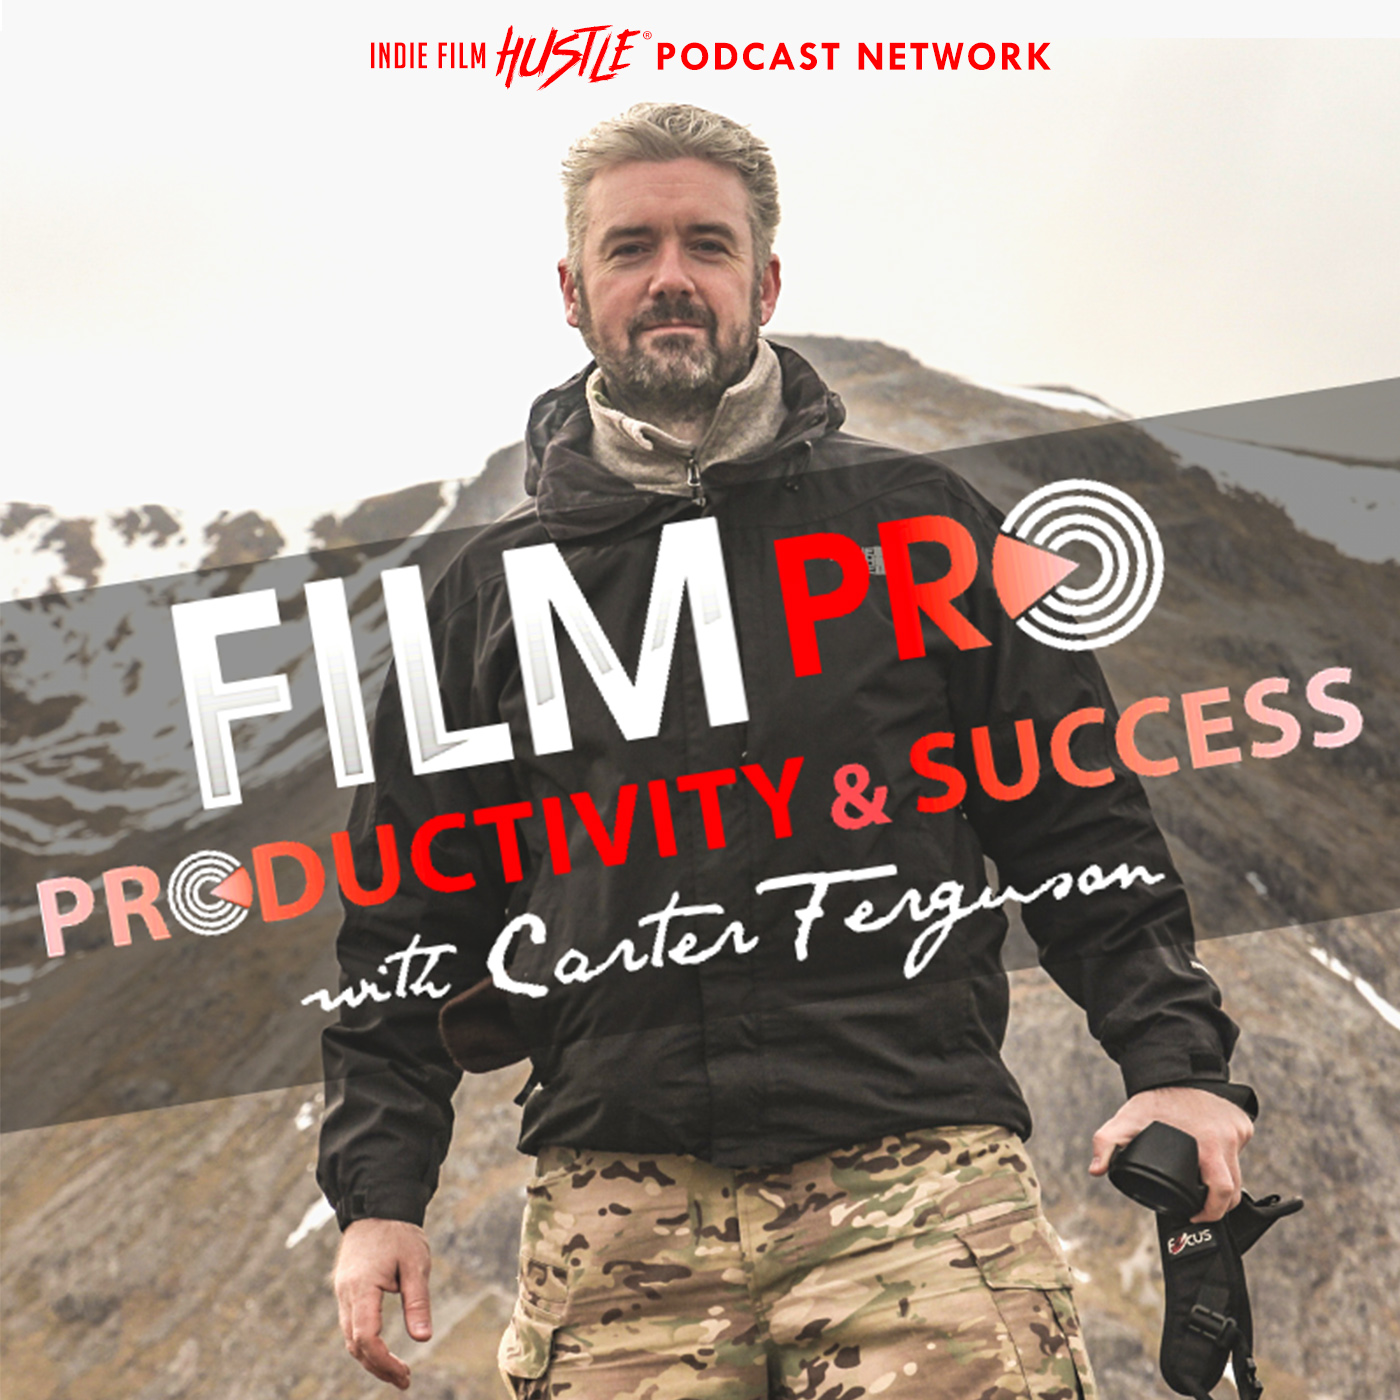 Film Pro Productivity & Success: A Filmmaking Podcast